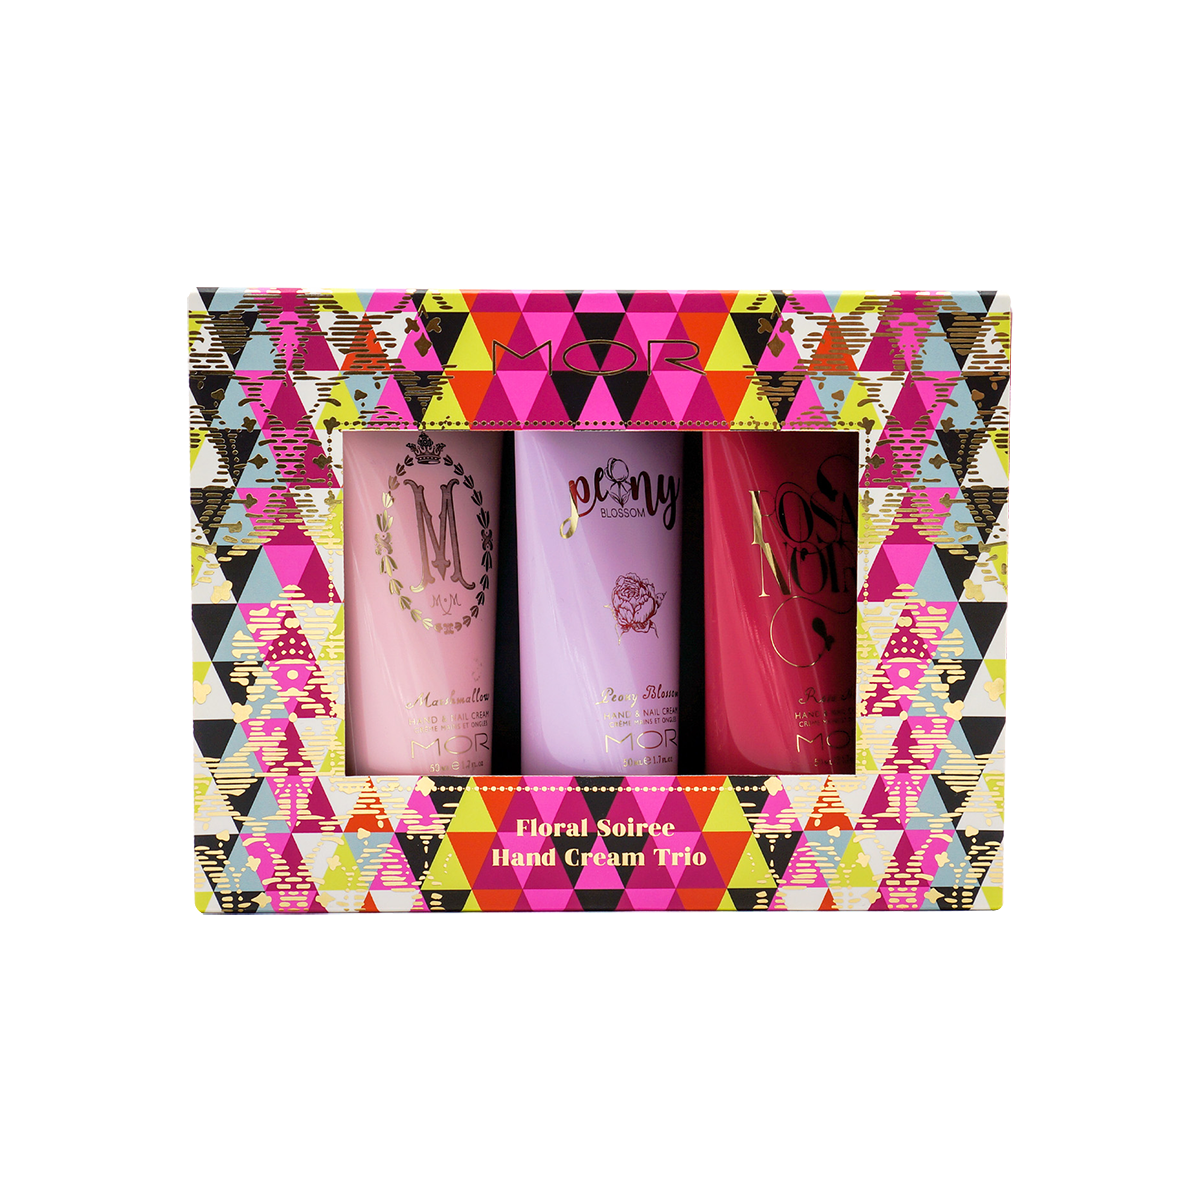 Mor - Floral Soiree Hand Cream Trio